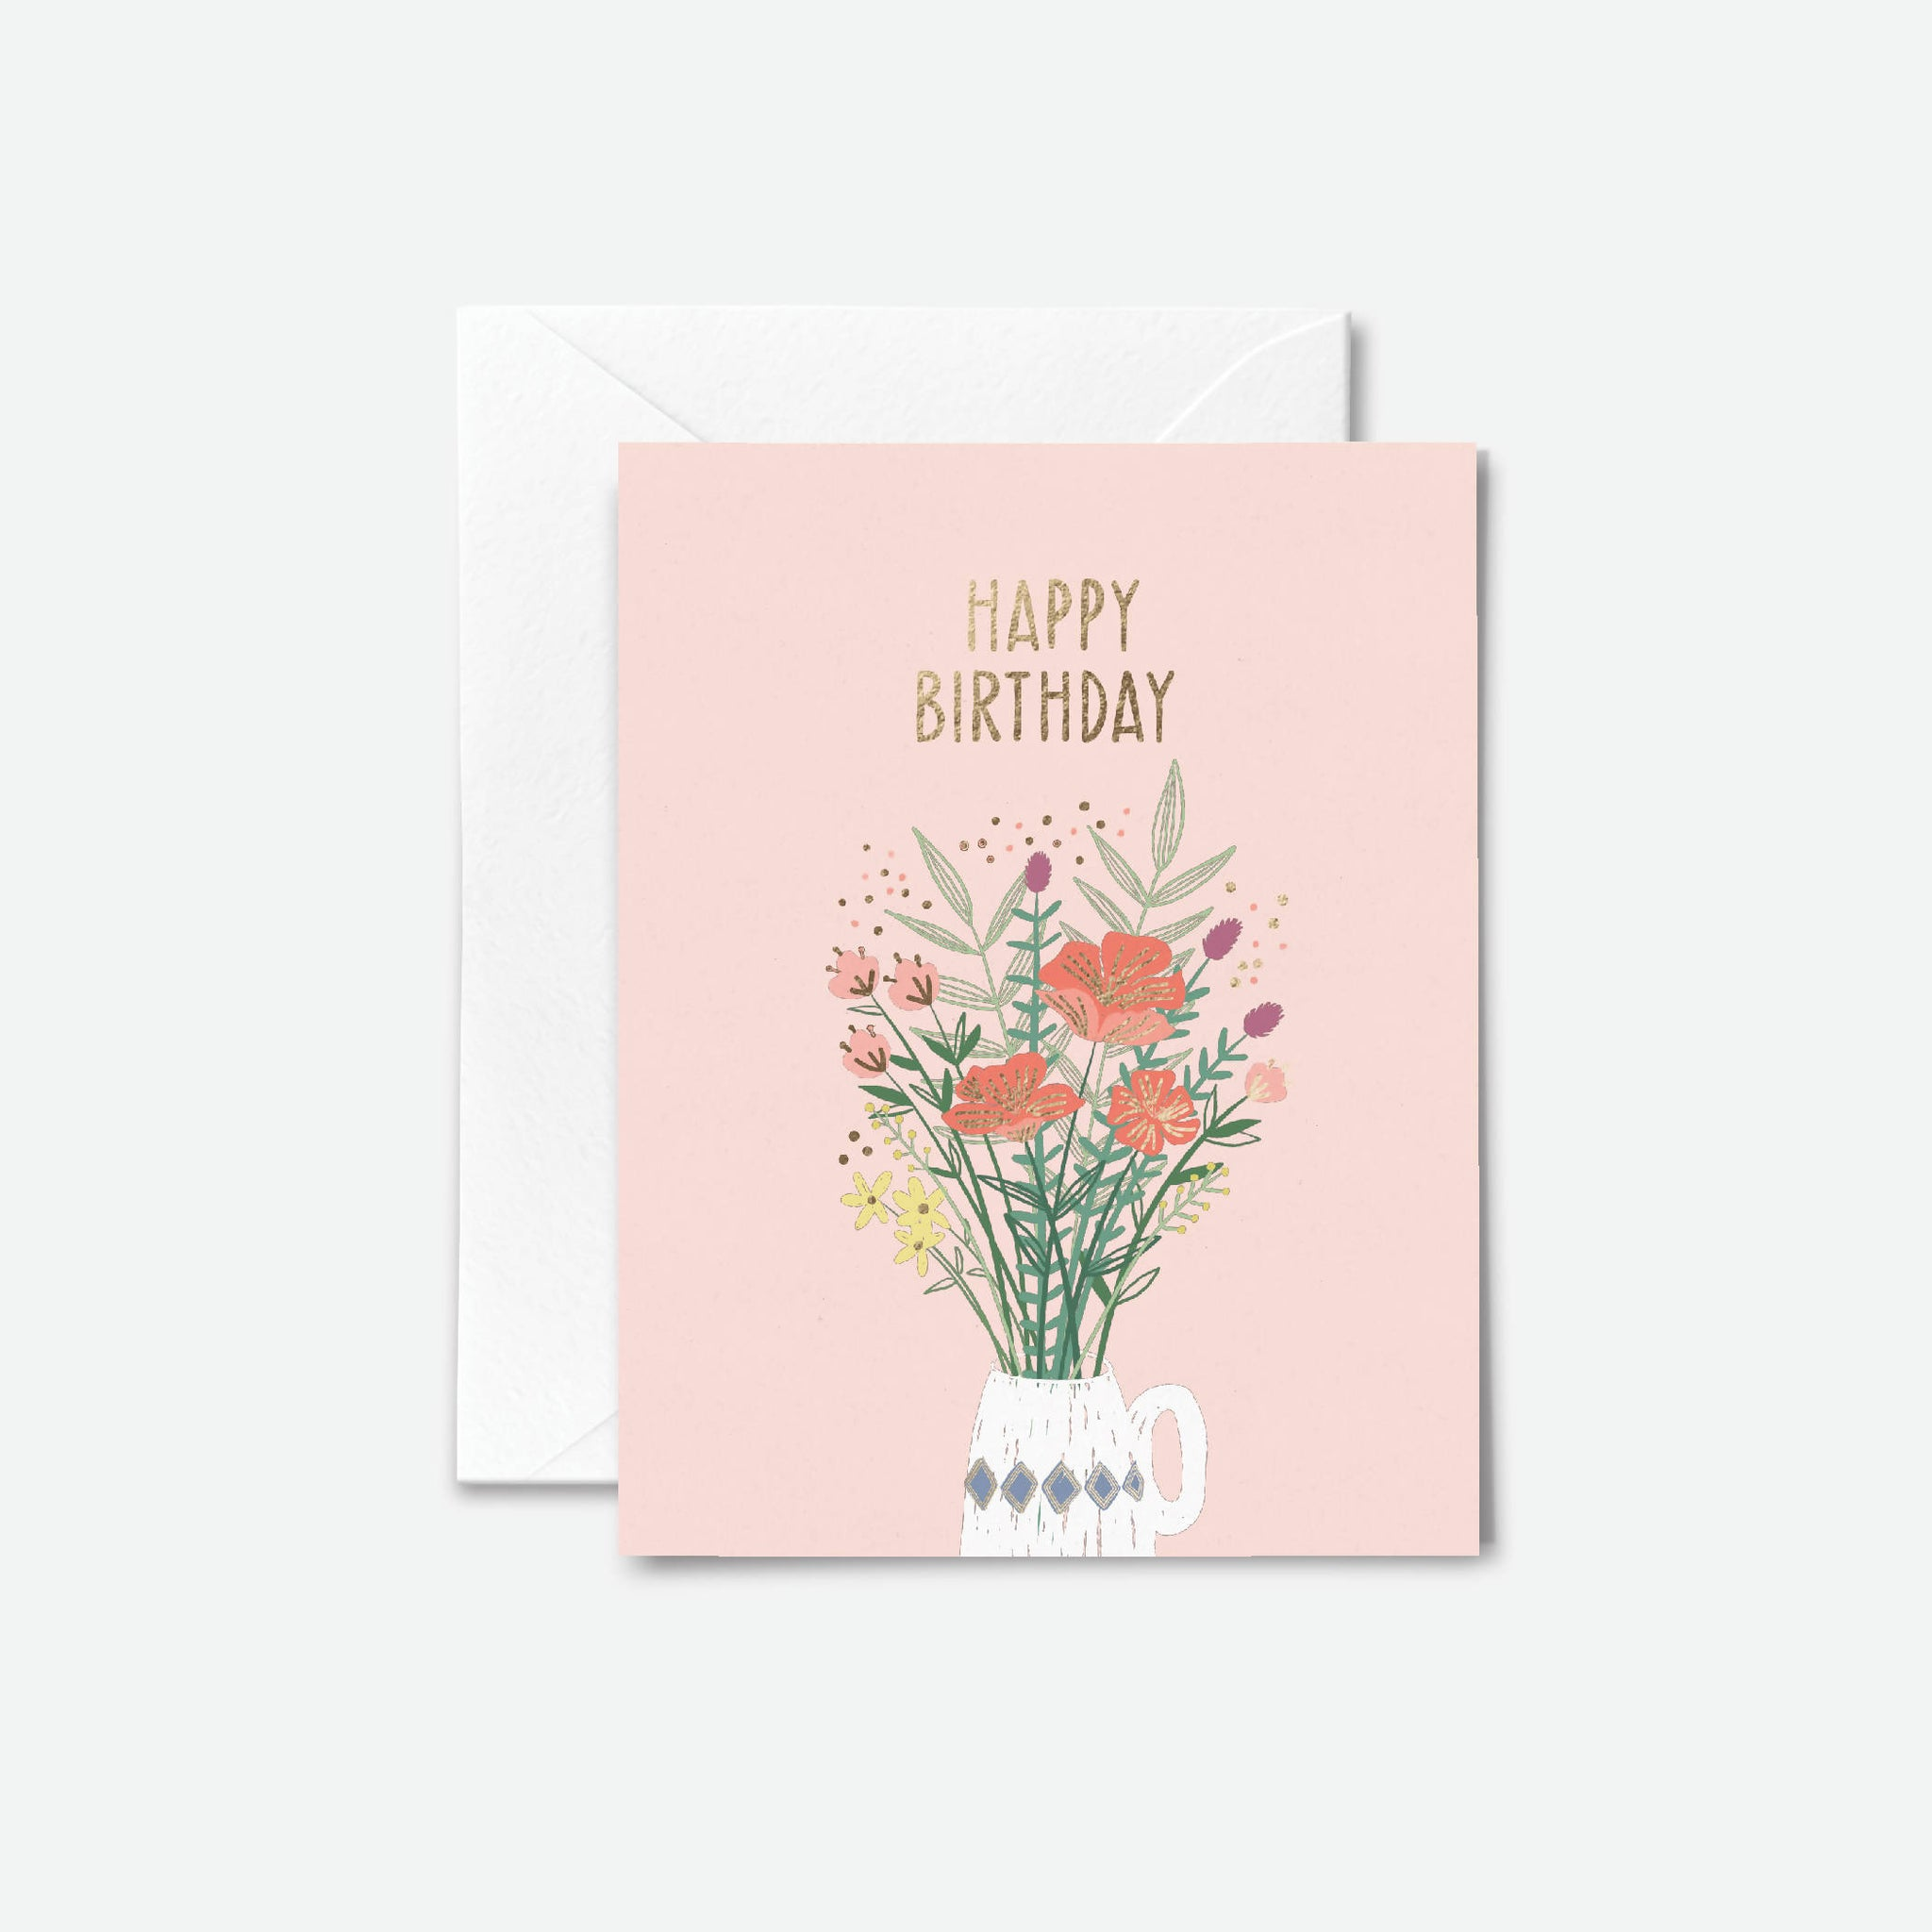 Gold Foil Floral Birthday Card